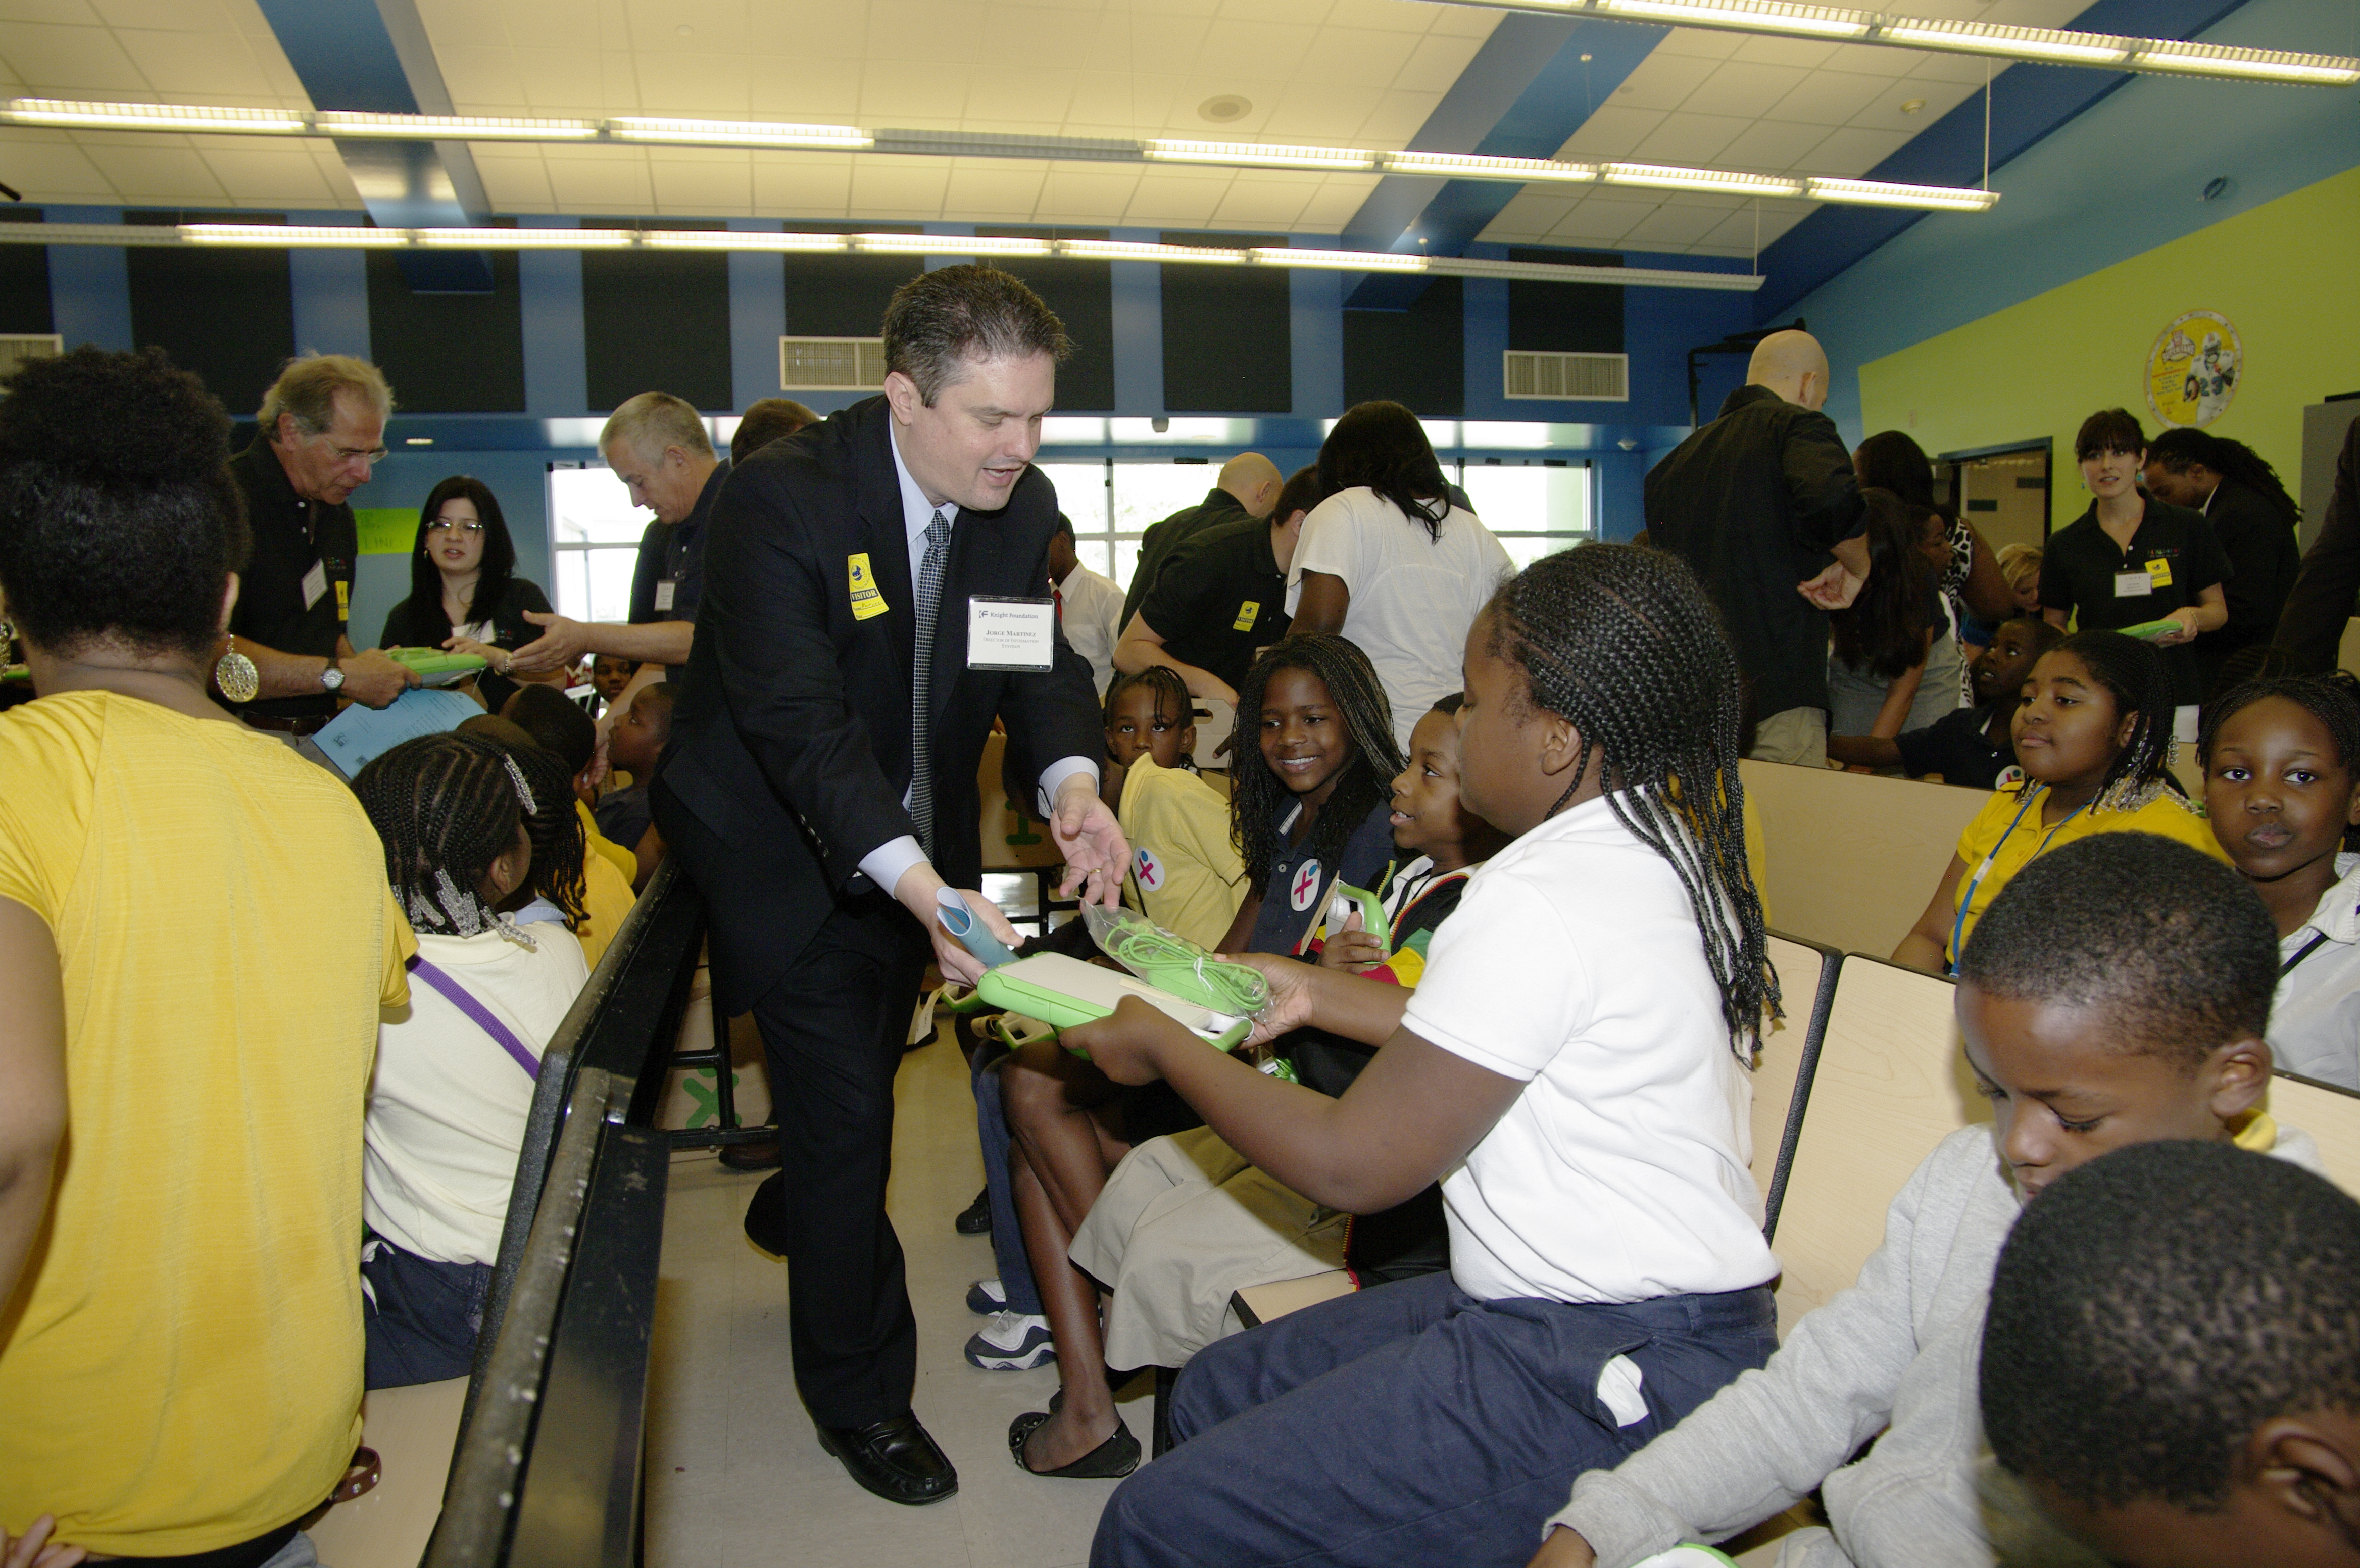 Jorge Martinez, Director of Information Systems for Knight Foundation, gives laptops to kids at Holmes Elementary School, 2012